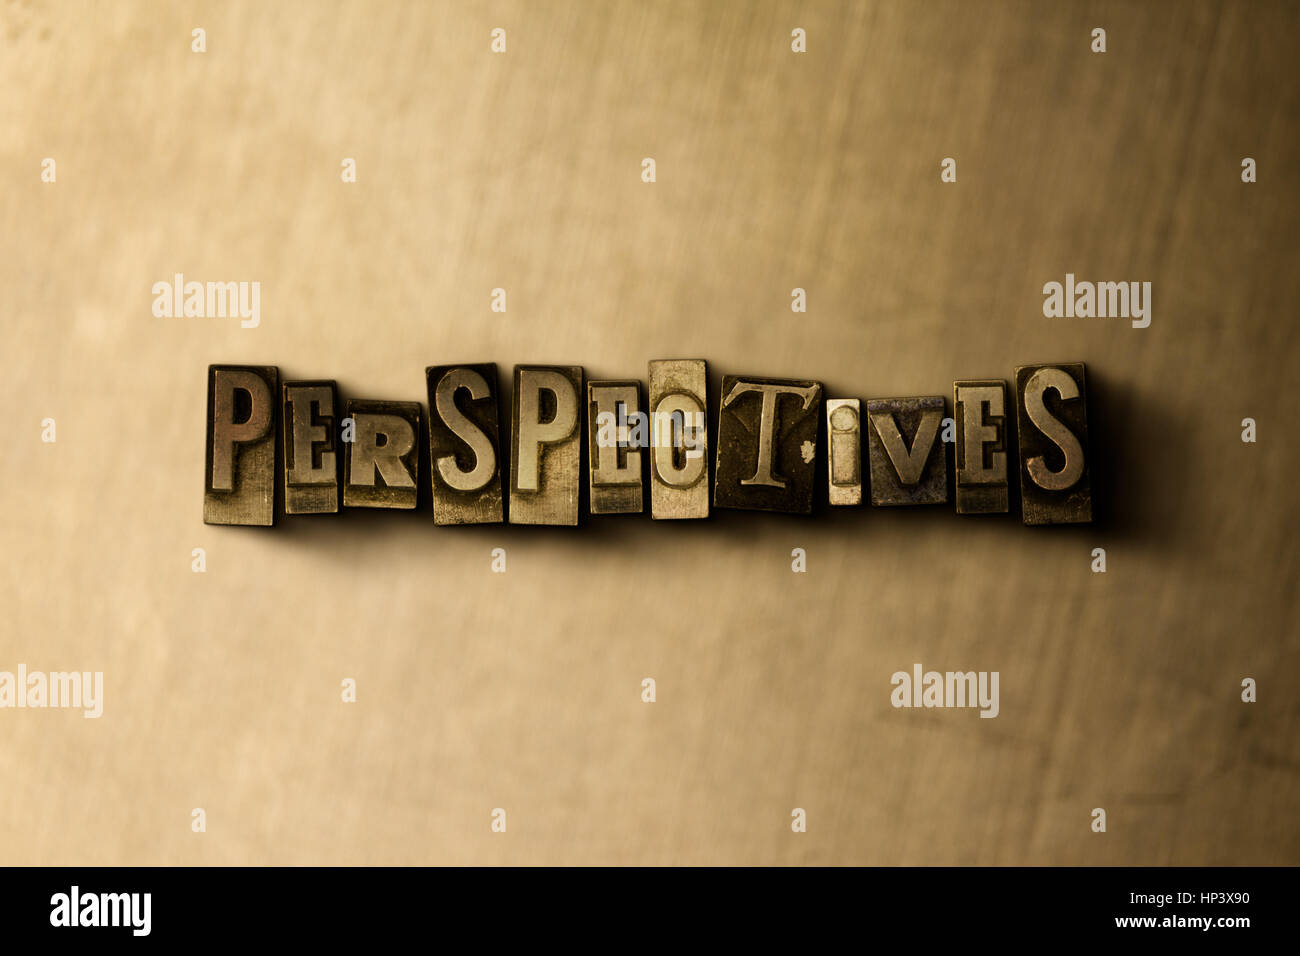 PERSPECTIVES - close-up of grungy vintage typeset word on metal backdrop. Royalty free stock illustration.  Can - Stock Image